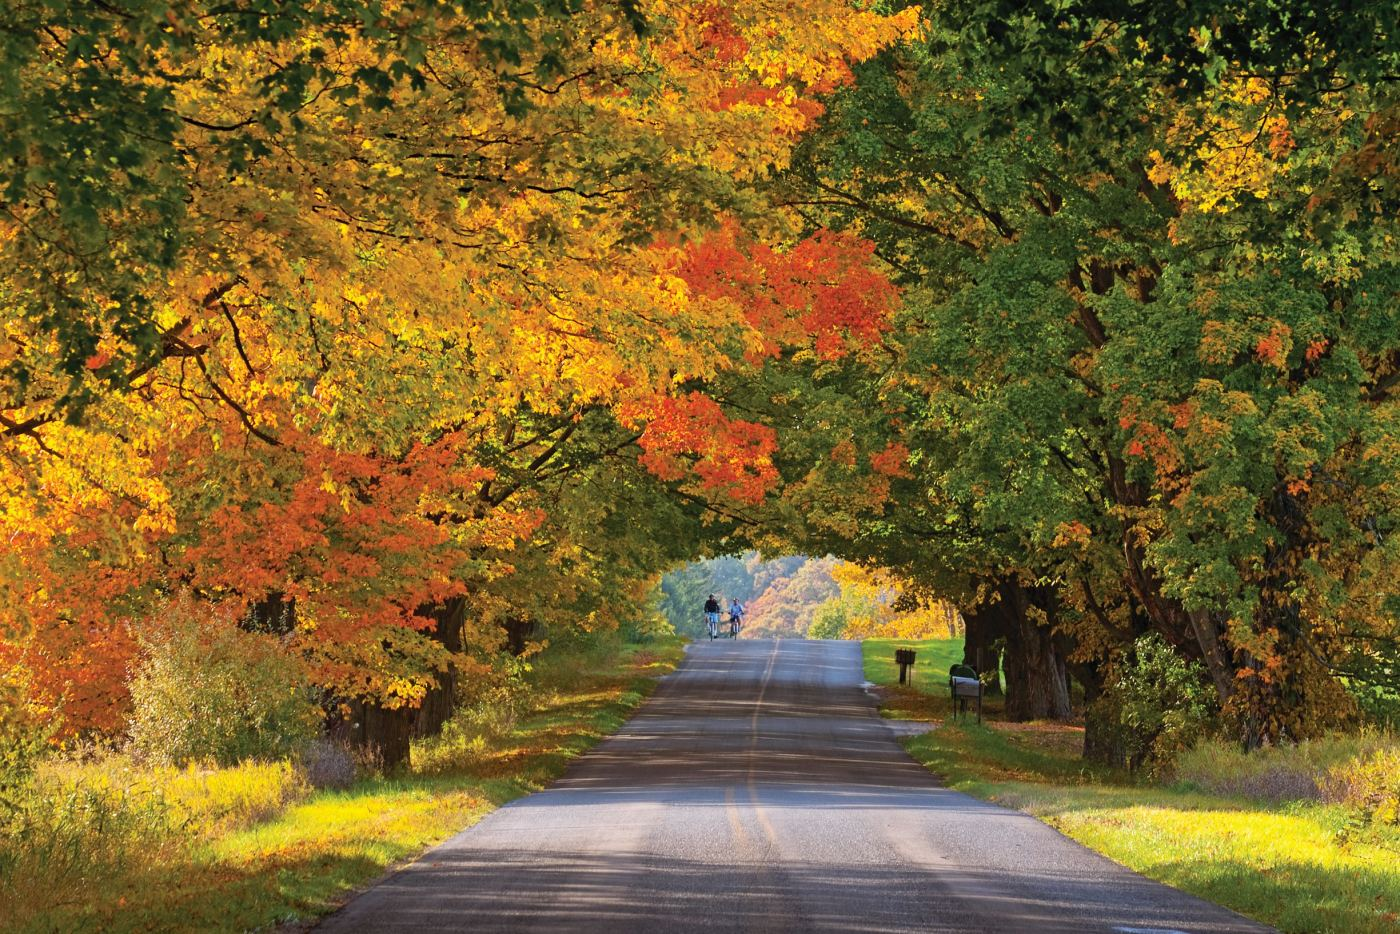 a road through an autumnal tunnel of trees